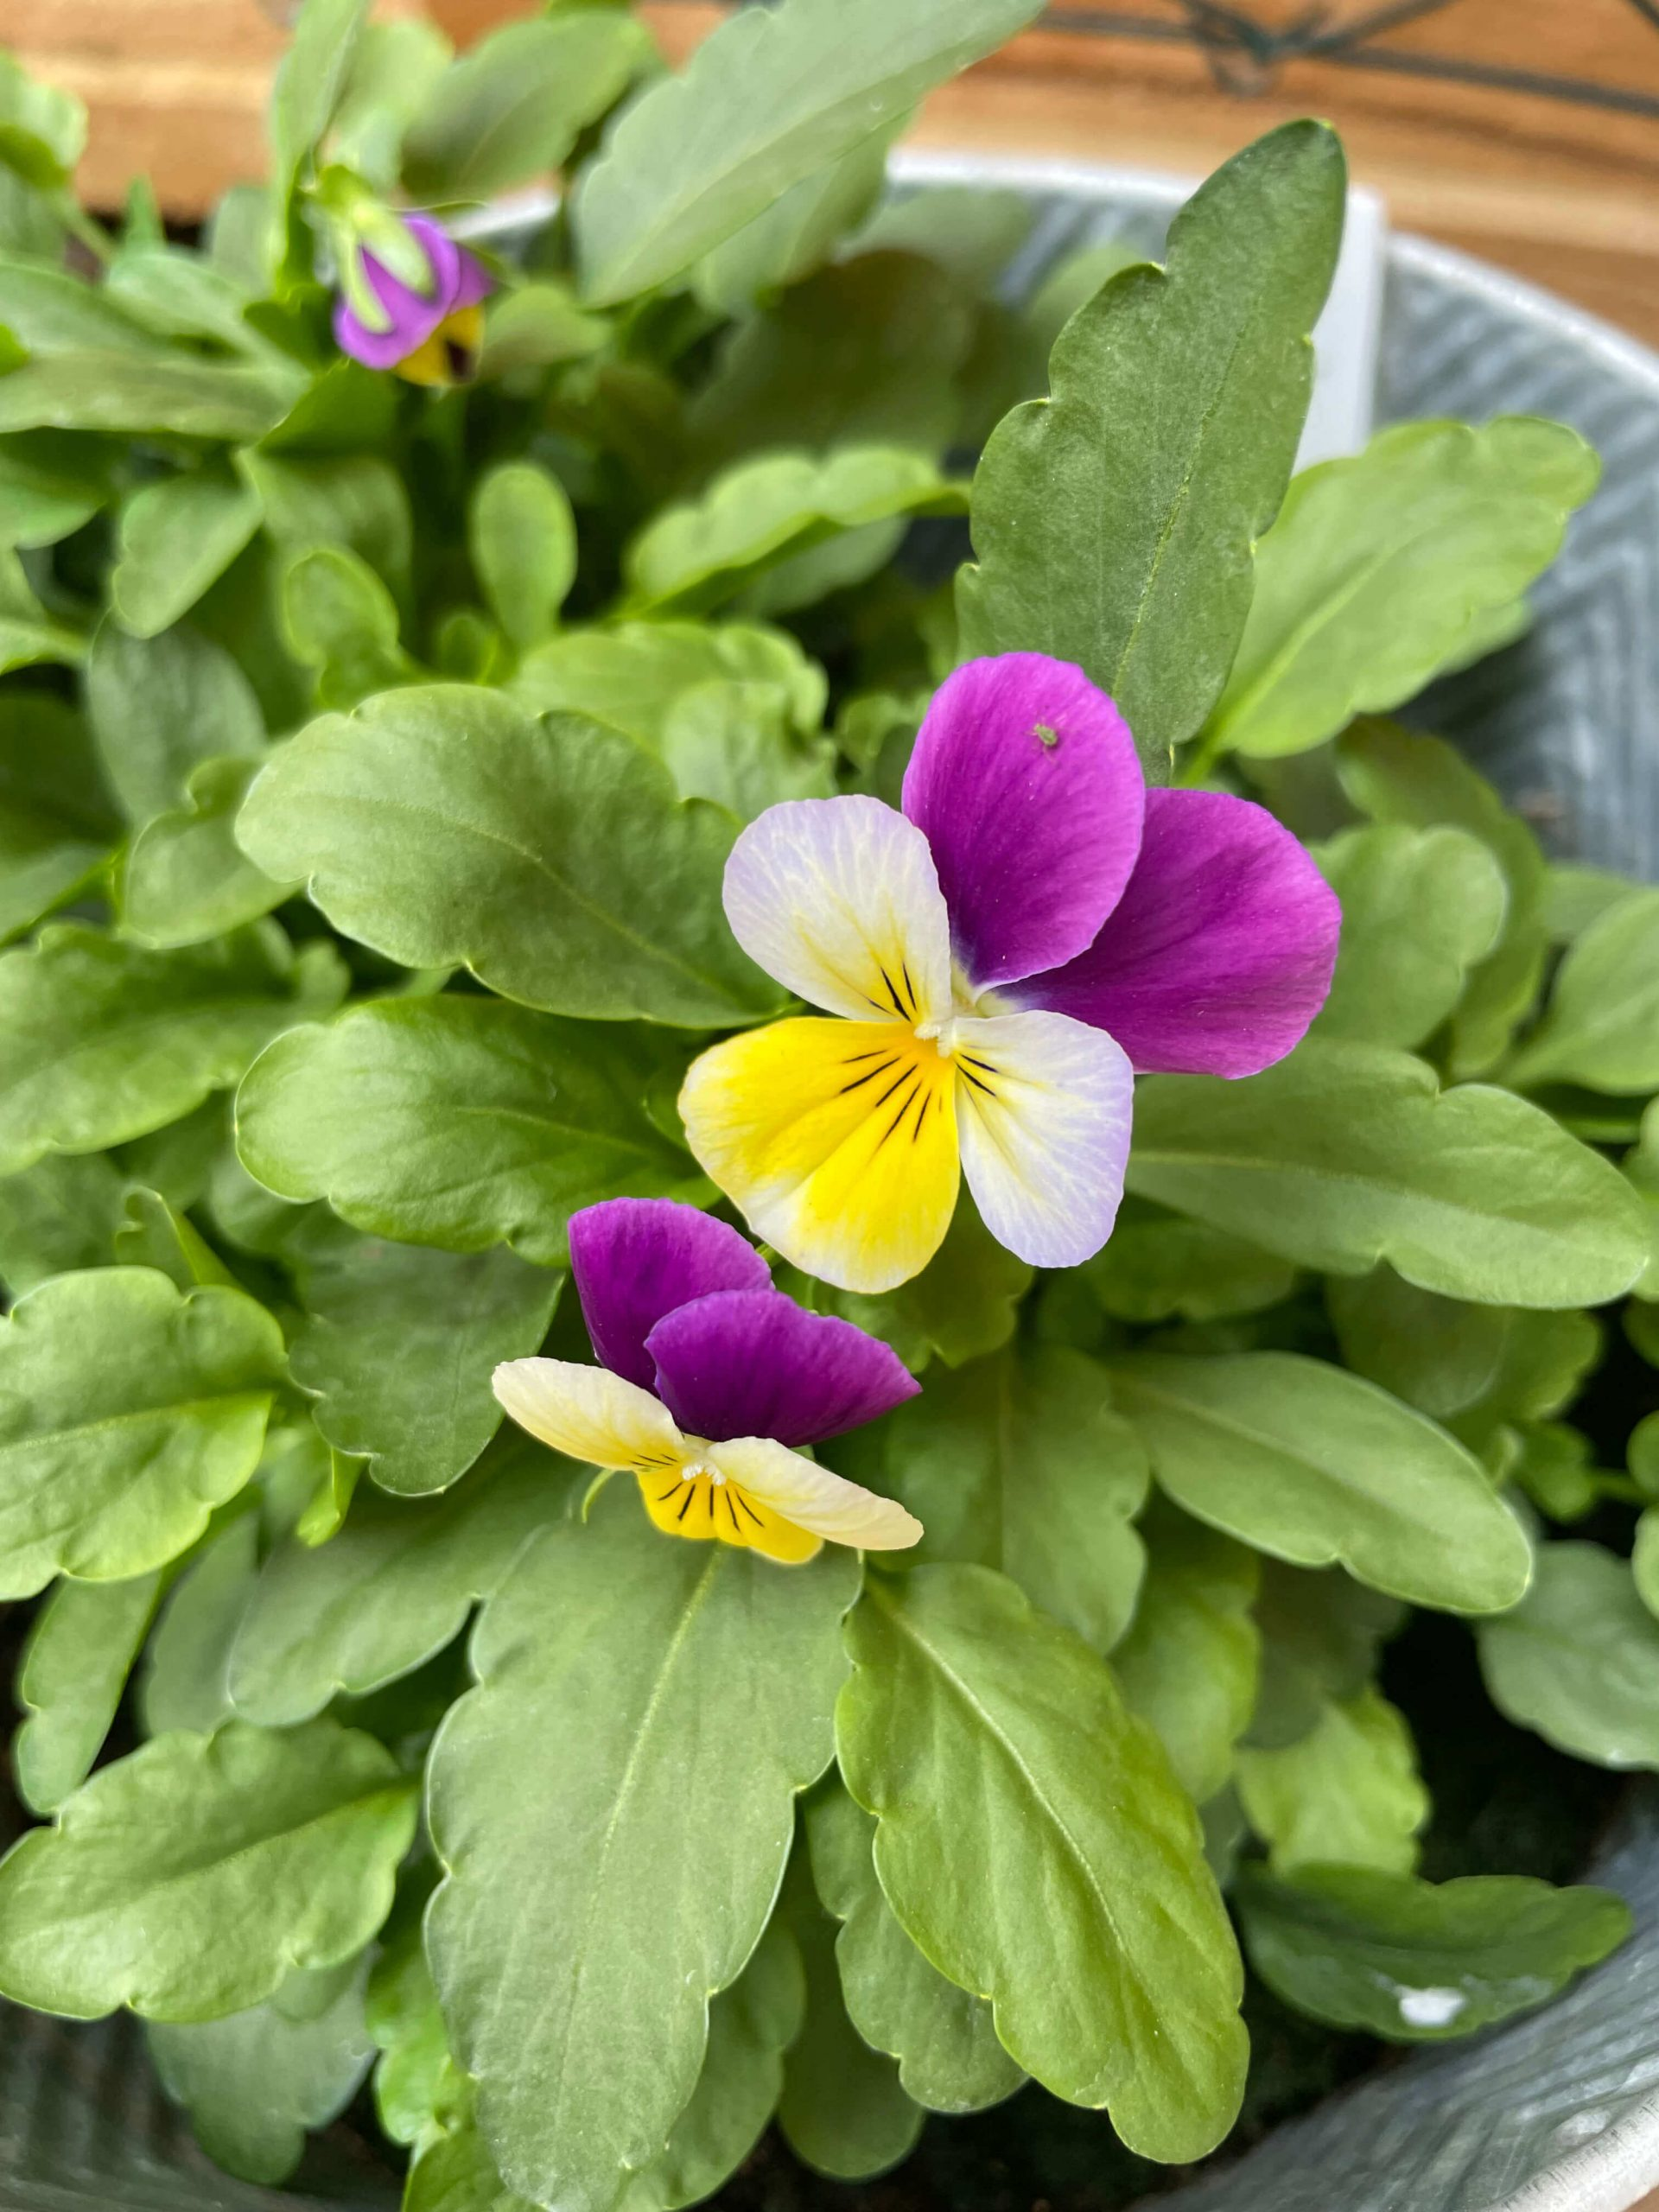 Two white, purple and yellow violas growing out of a lot of greenery